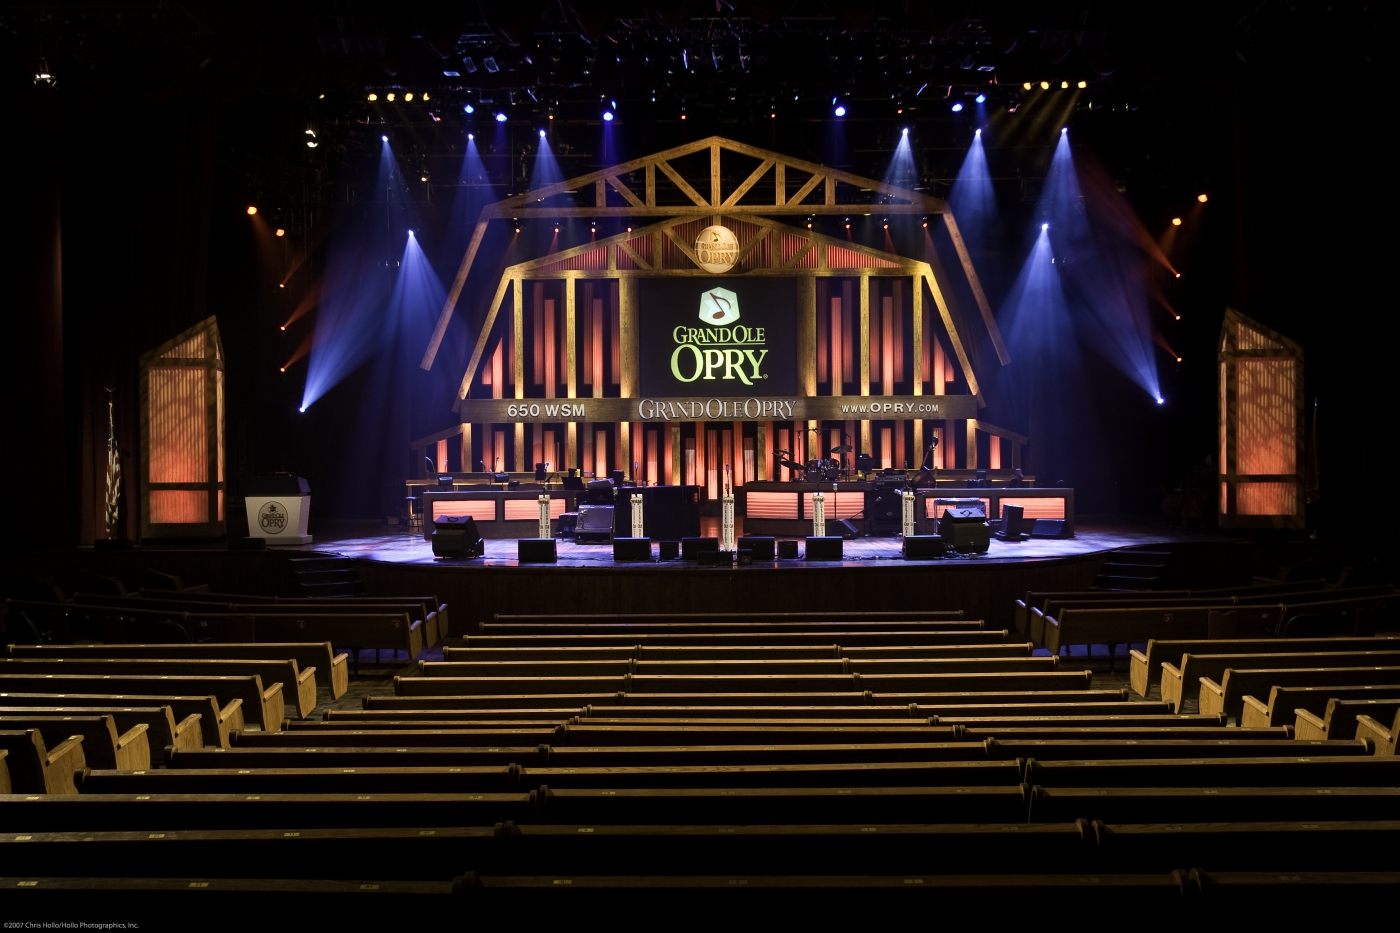 Interior of the world famous Grand Ole Opry.